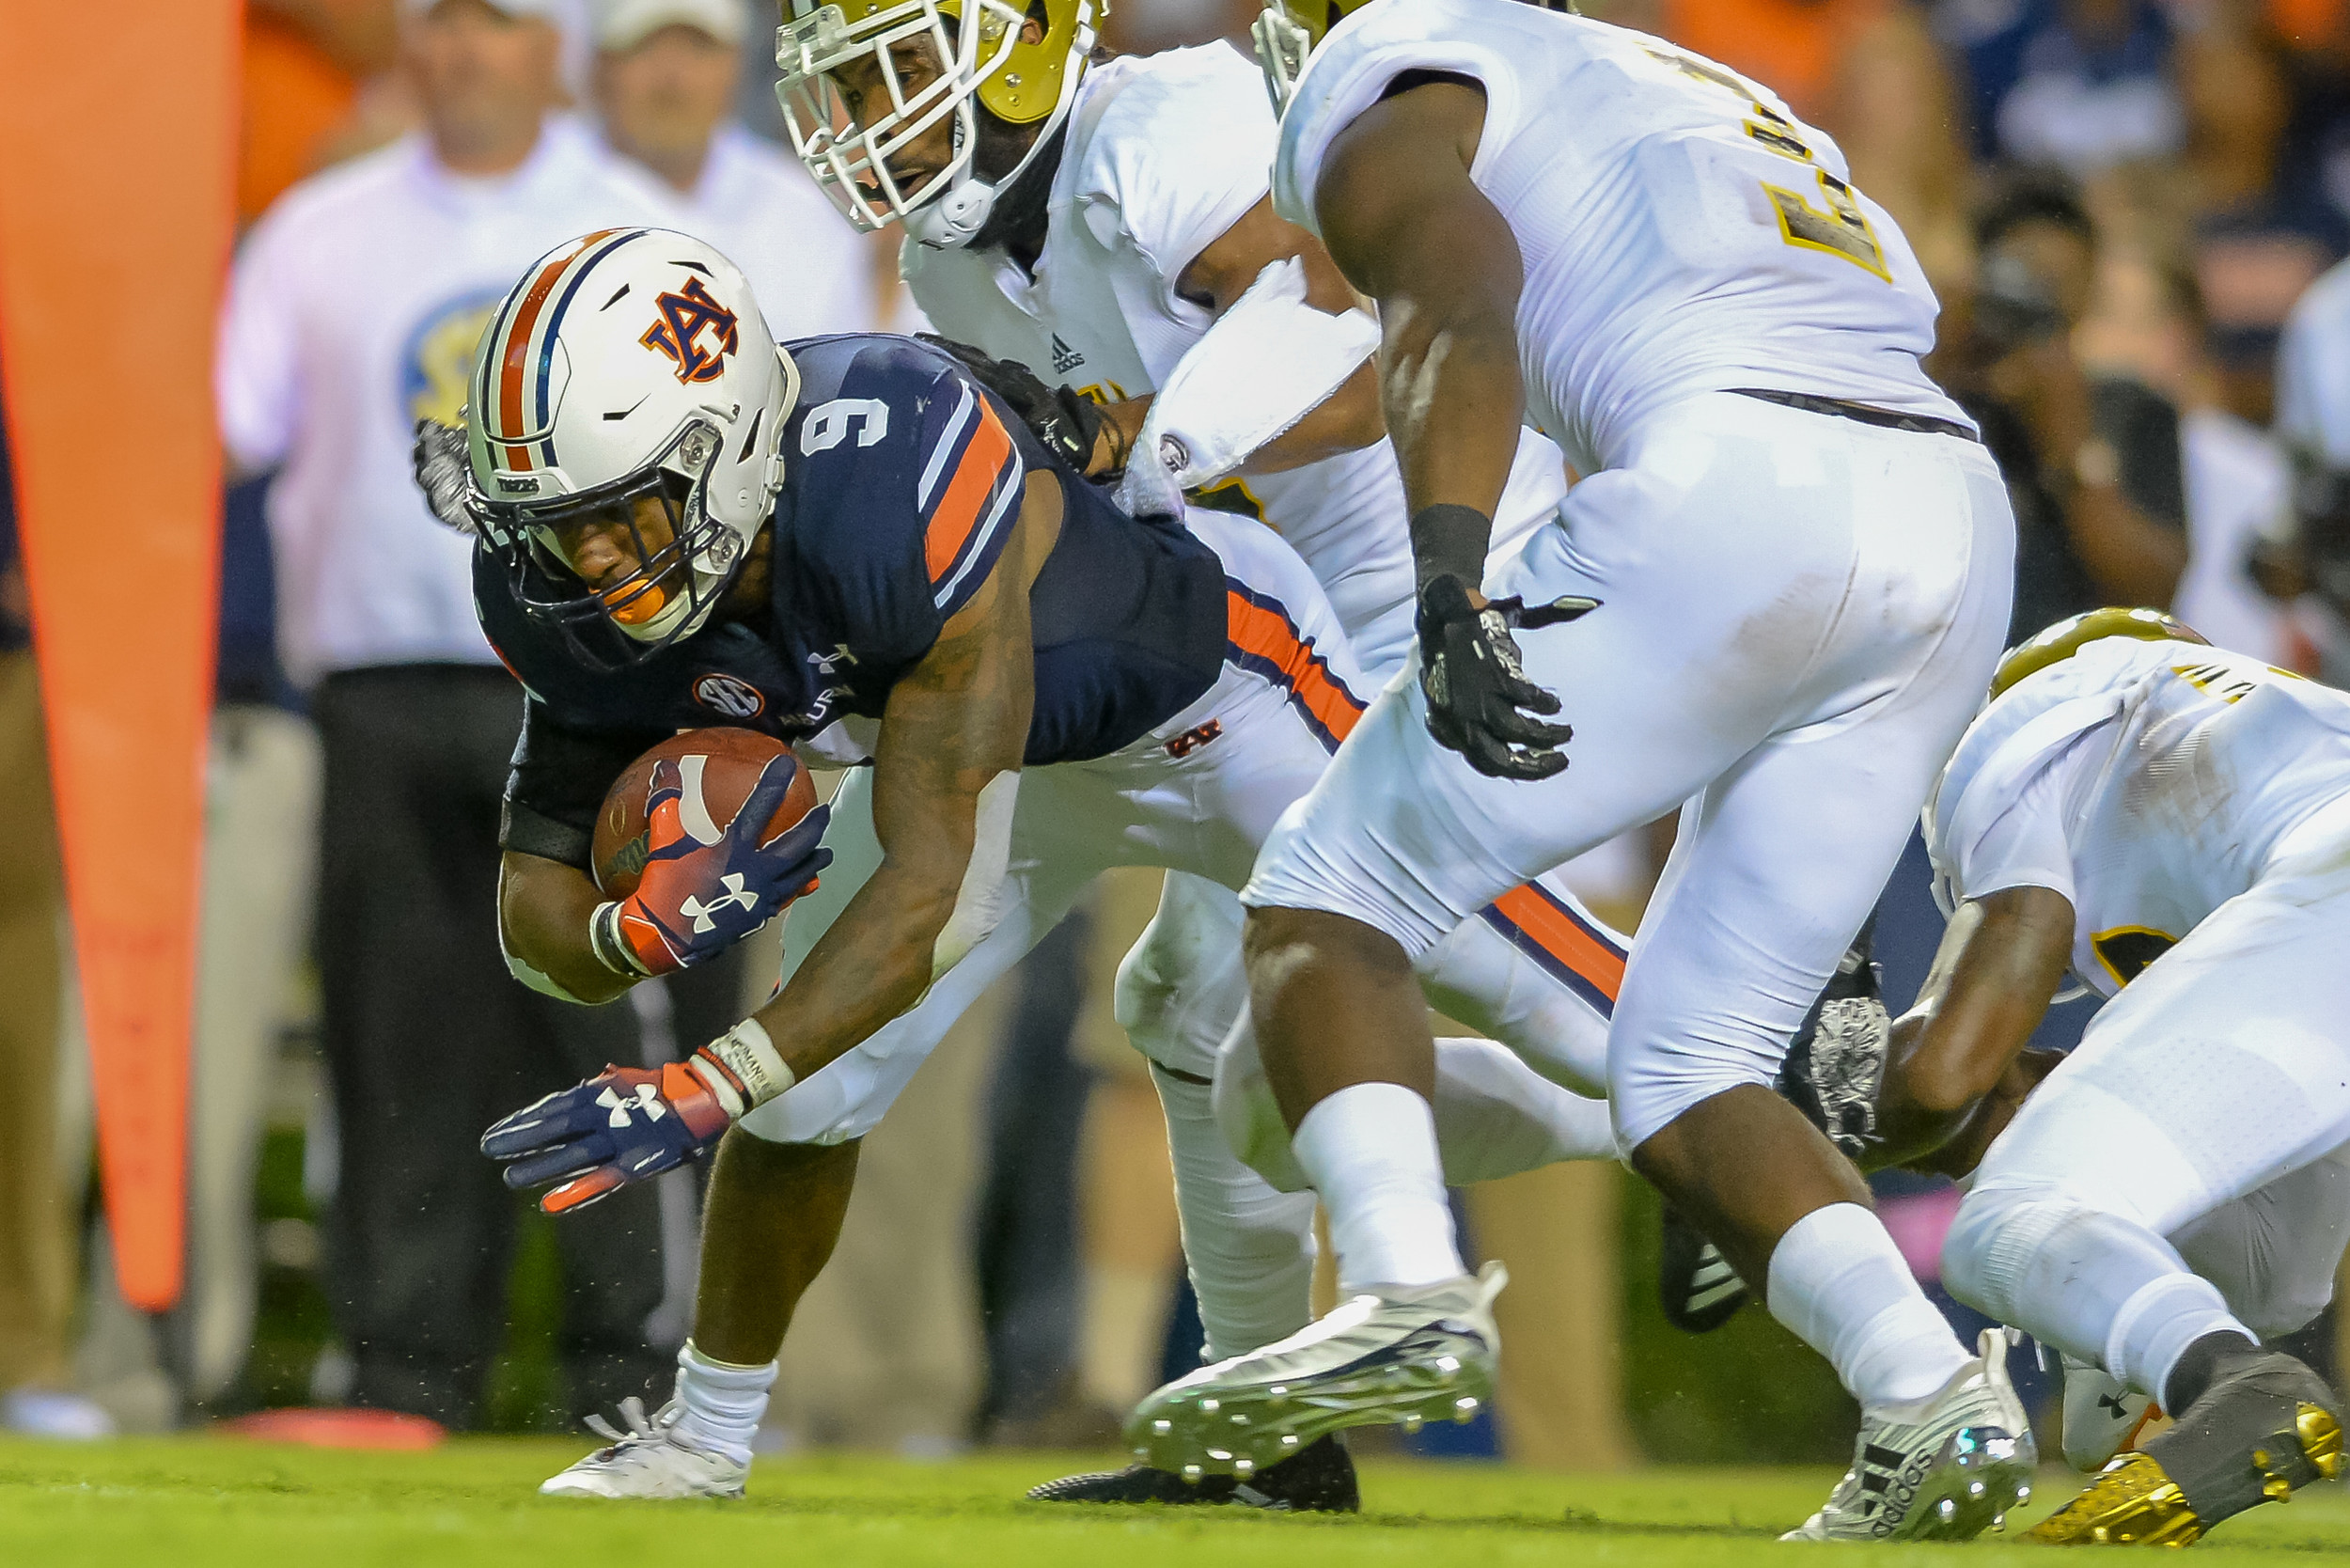 Auburn Tigers running back Kam Martin (9) stretches for yards during the first half of Saturday's game, at Jordan Hare Stadium in Auburn, AL. (Contributed by Jeff Johnsey)